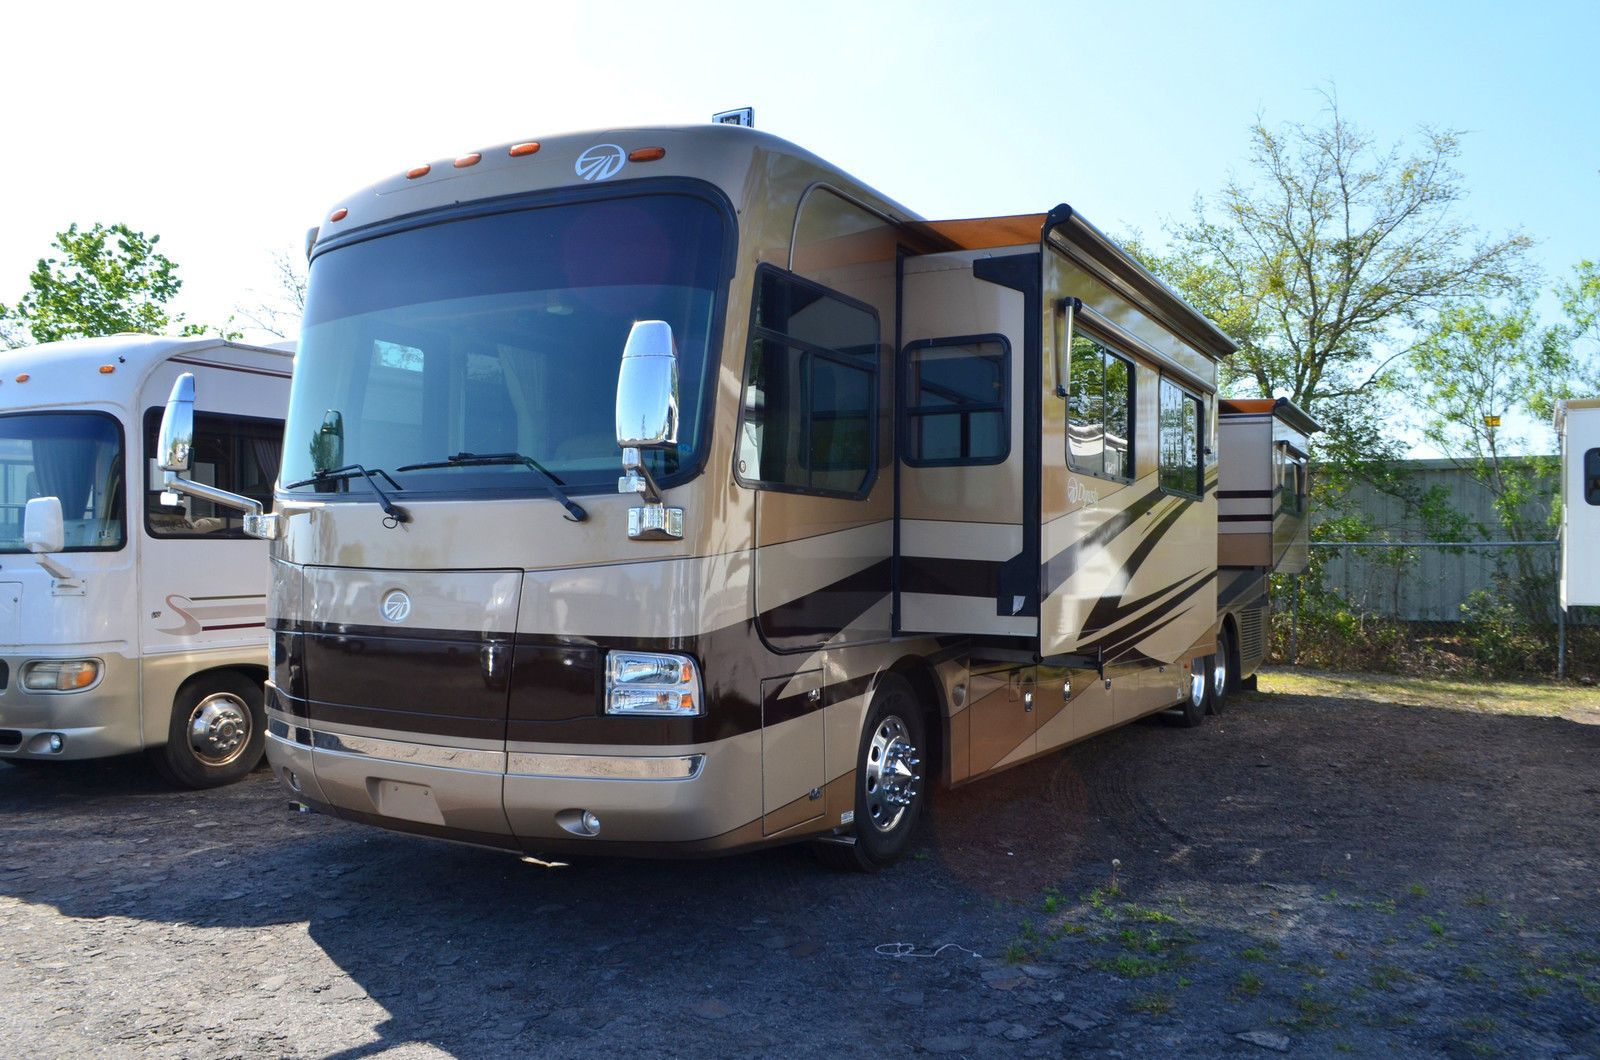 Http Rover Ebay Com Rover 1 711 53200 19255 0 1 Ff3 2 Toolid 10039 Campid 5337456469 Item 2 Motor Homes For Sale Rv Camping Accessories Recreational Vehicles